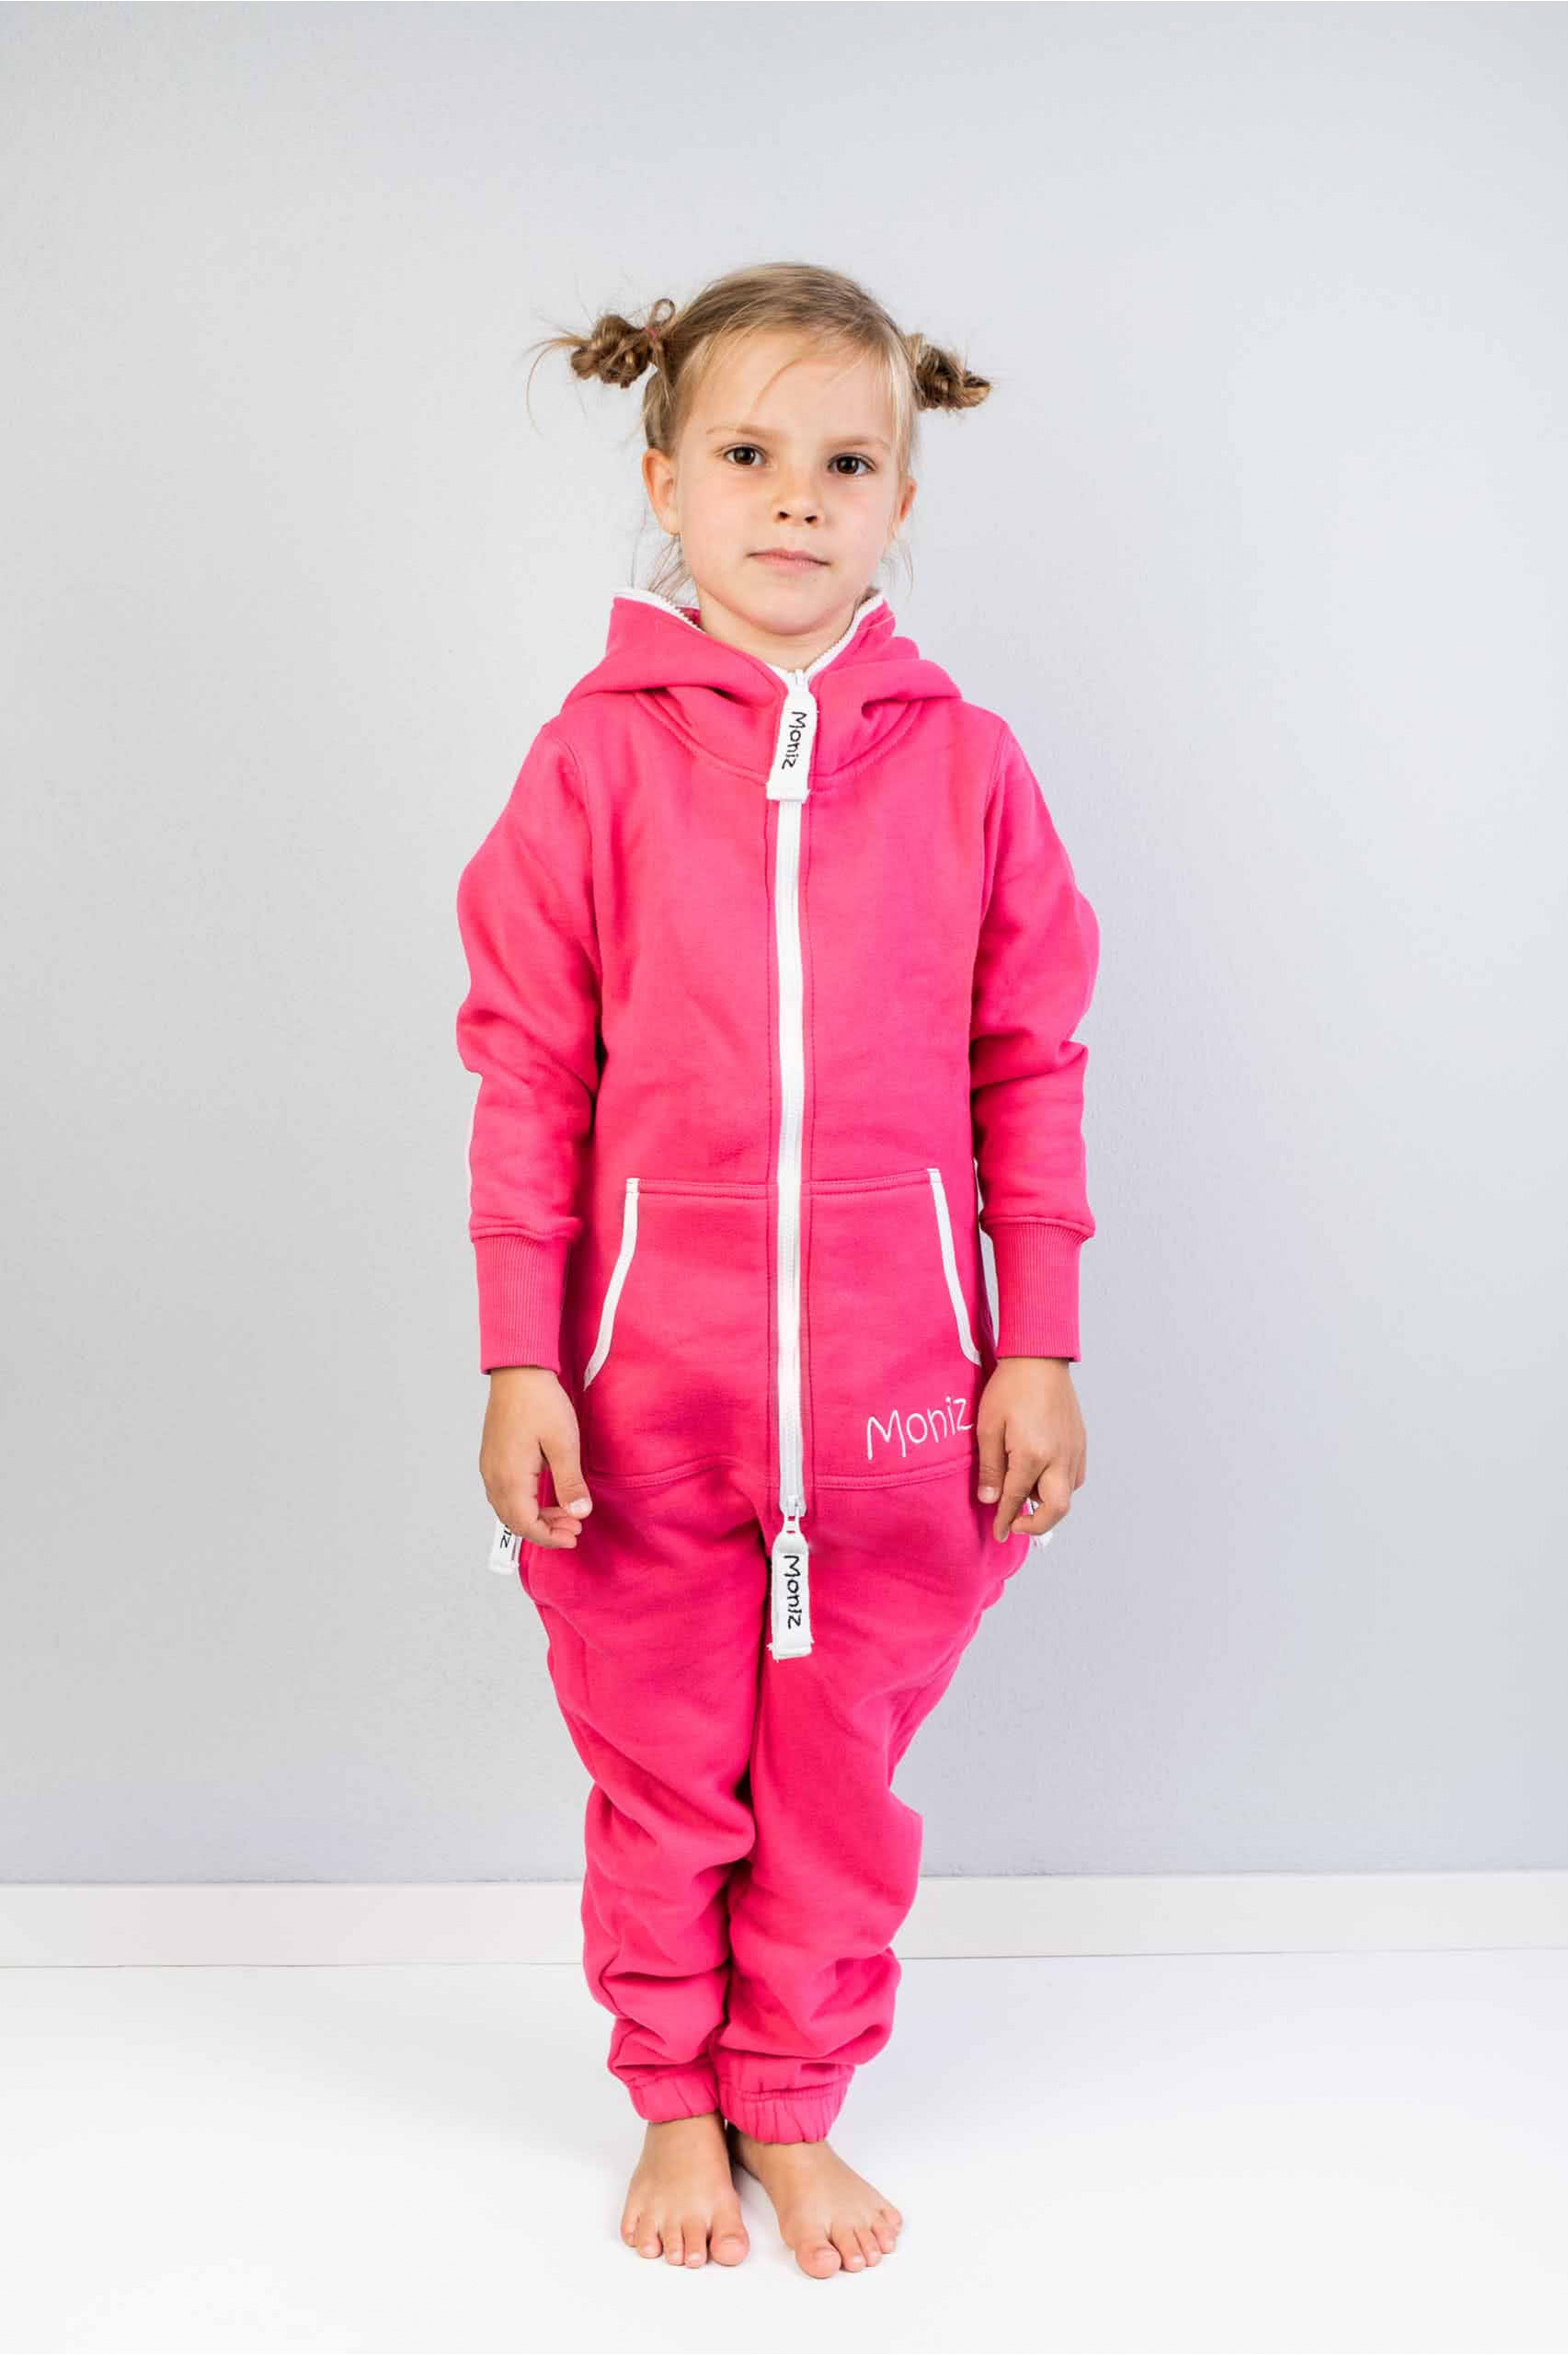 Moniz Kinder Jumpsuit